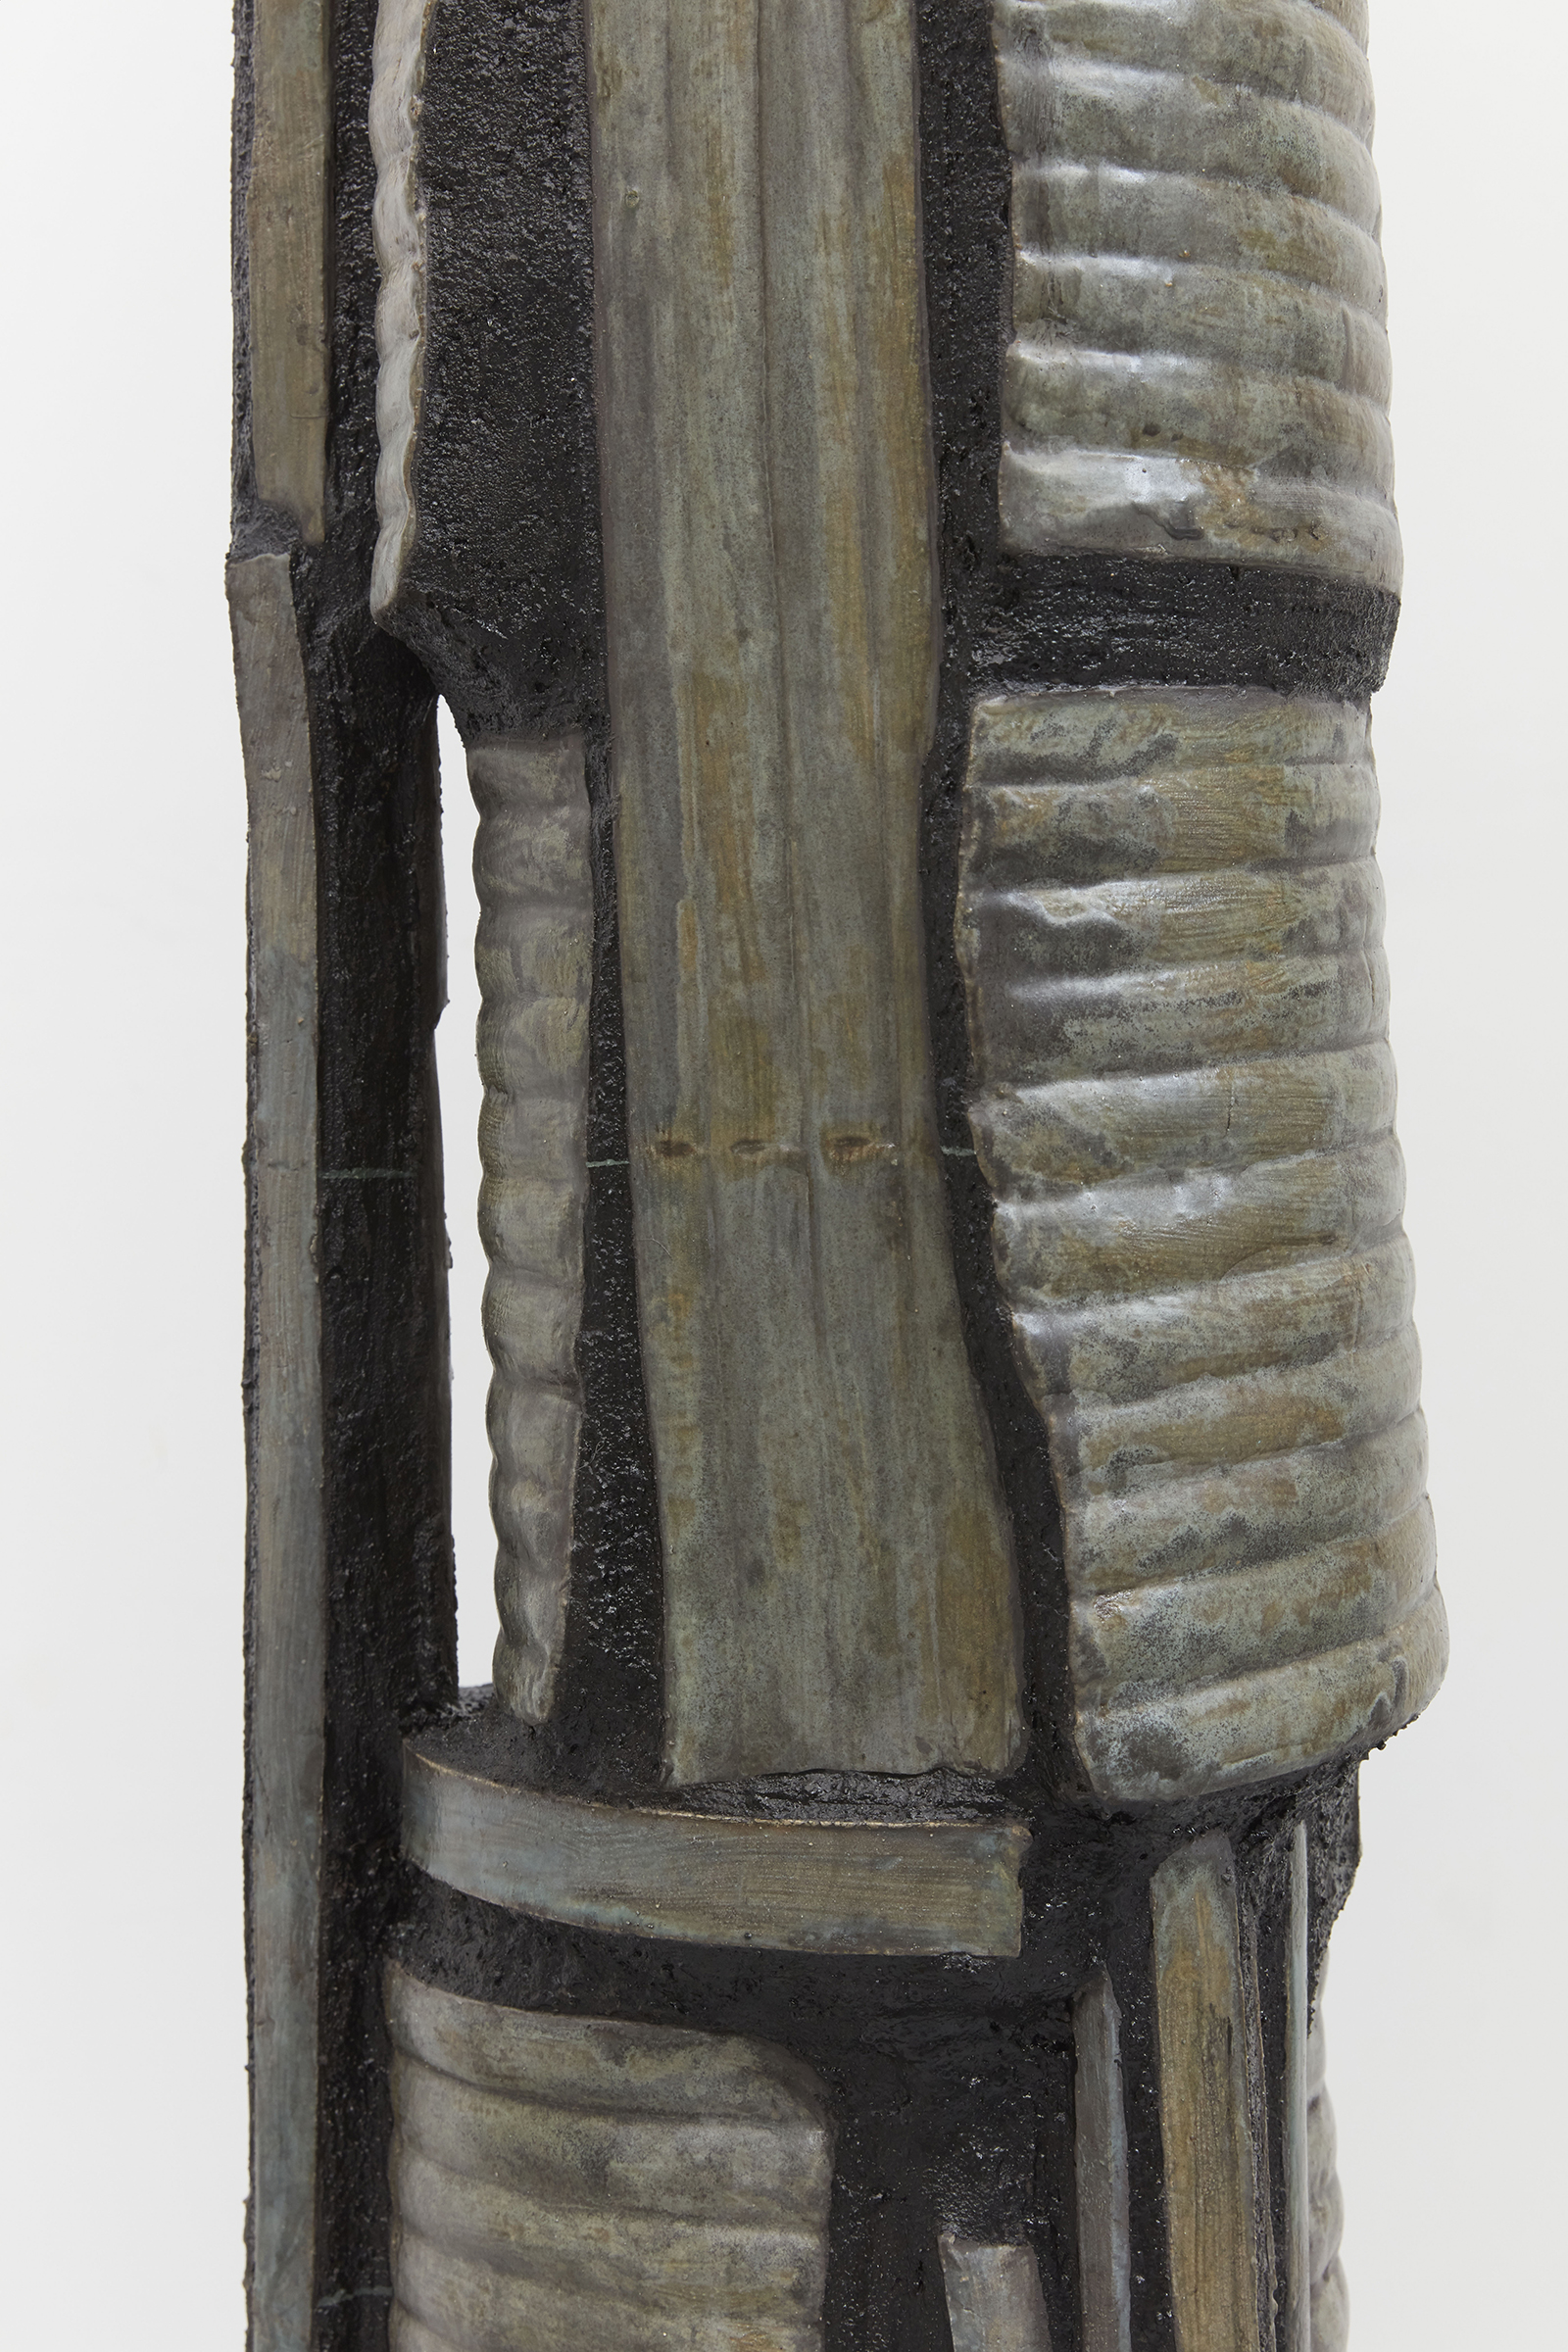 Anne Libby, Leaf Lift (detail), 2020, glazed ceramic, steel, sanded grout, 72.25h x 12w x 12d in.